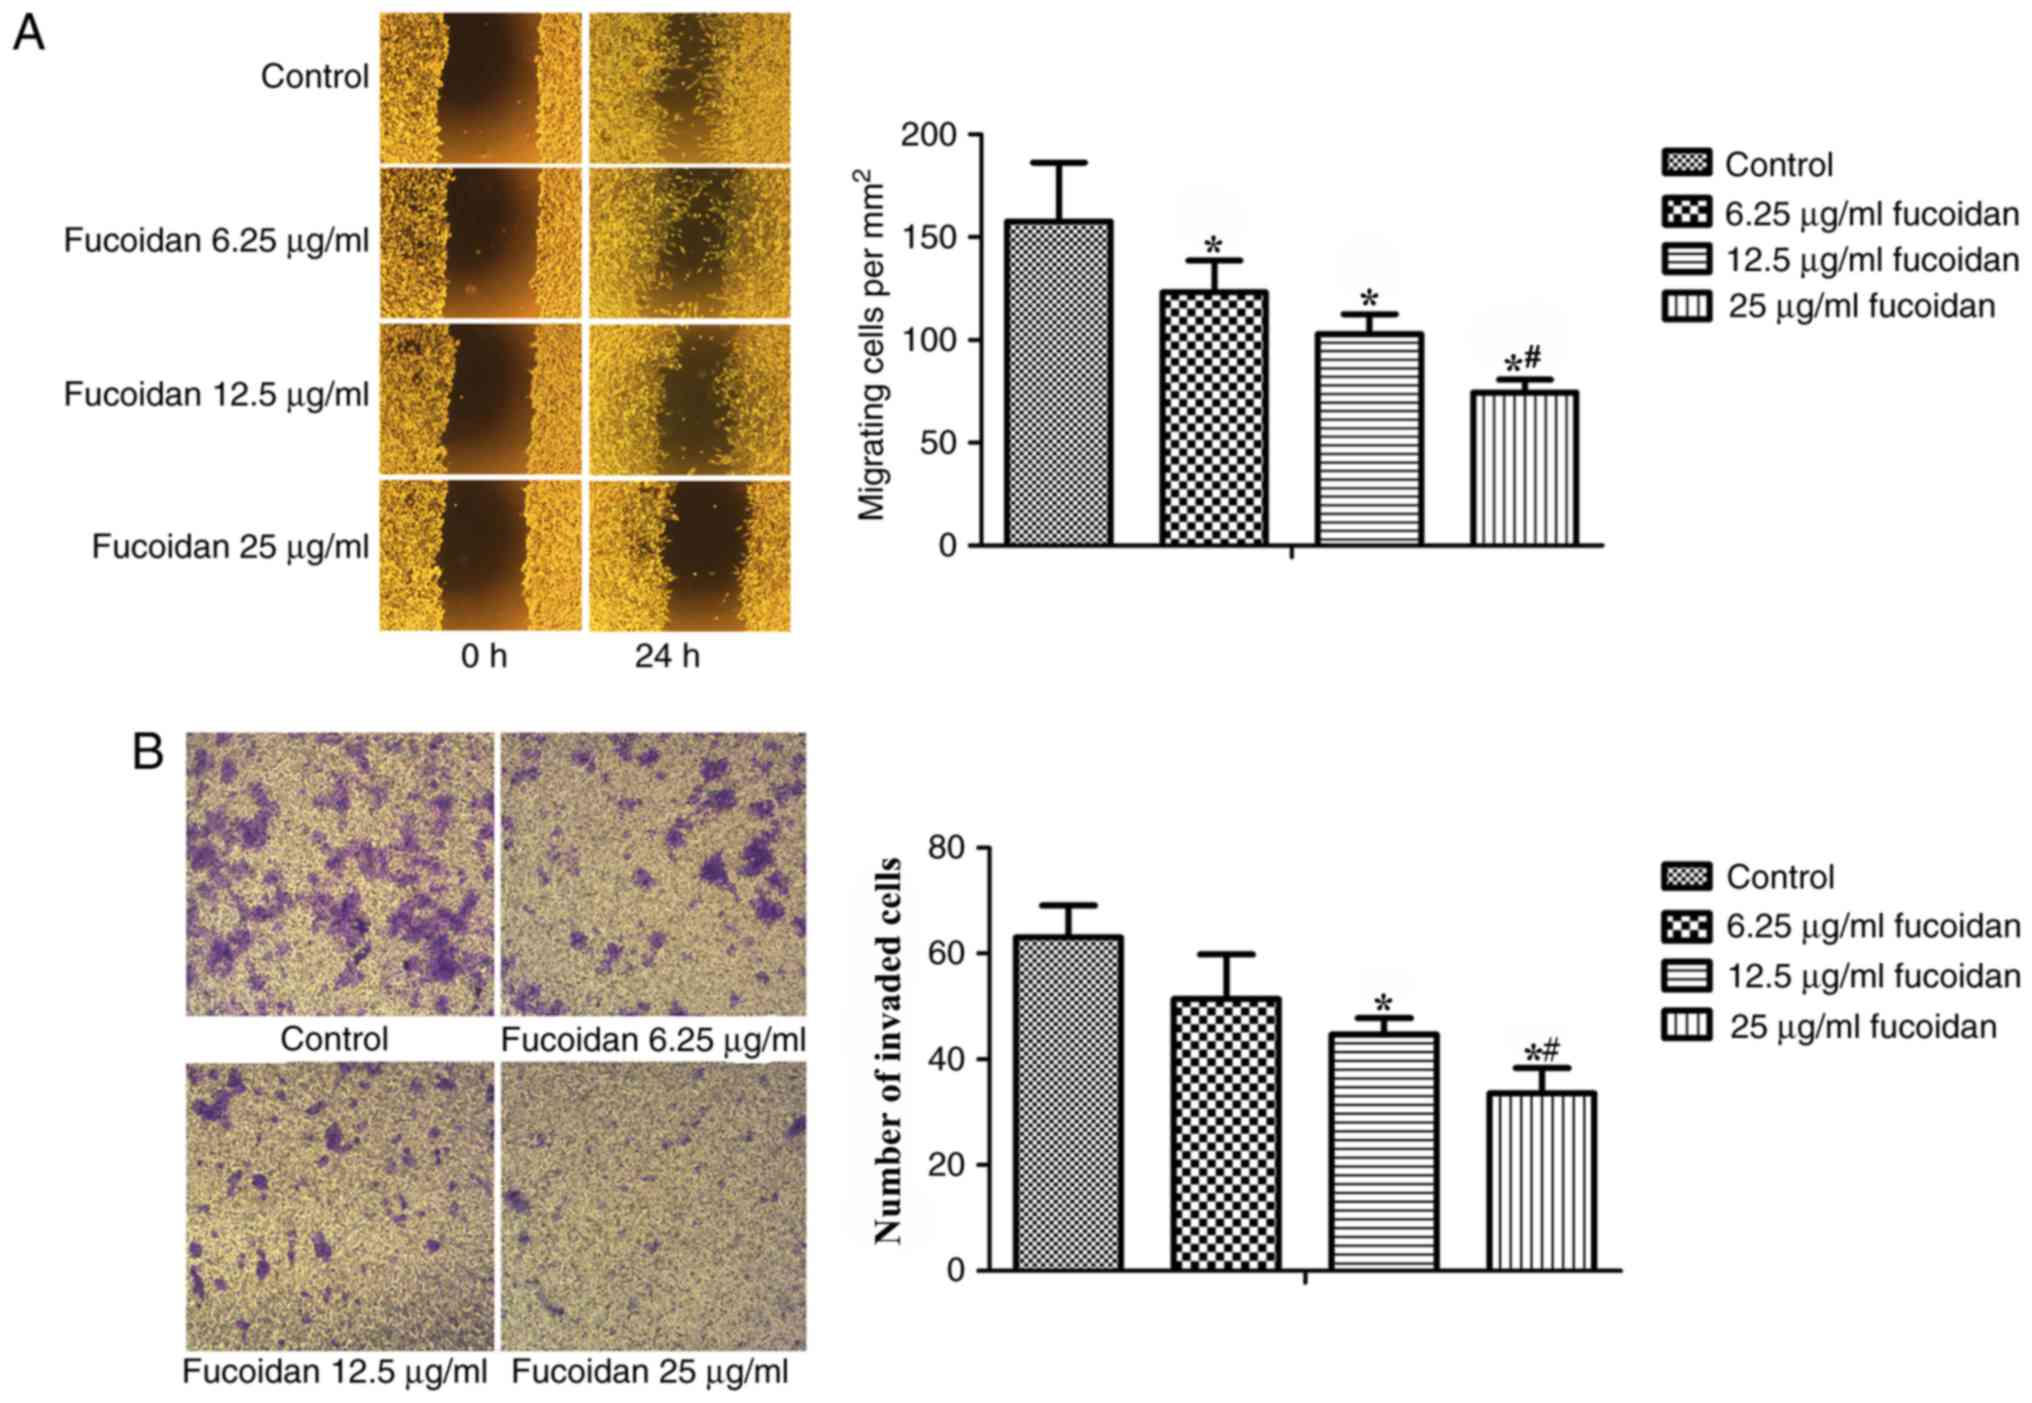 Fucoidan Inhibits Epithelial To Mesenchymal Transition Via Regulation Of The Hif 1a Pathway In Mammary Cancer Cells Under Hypoxia